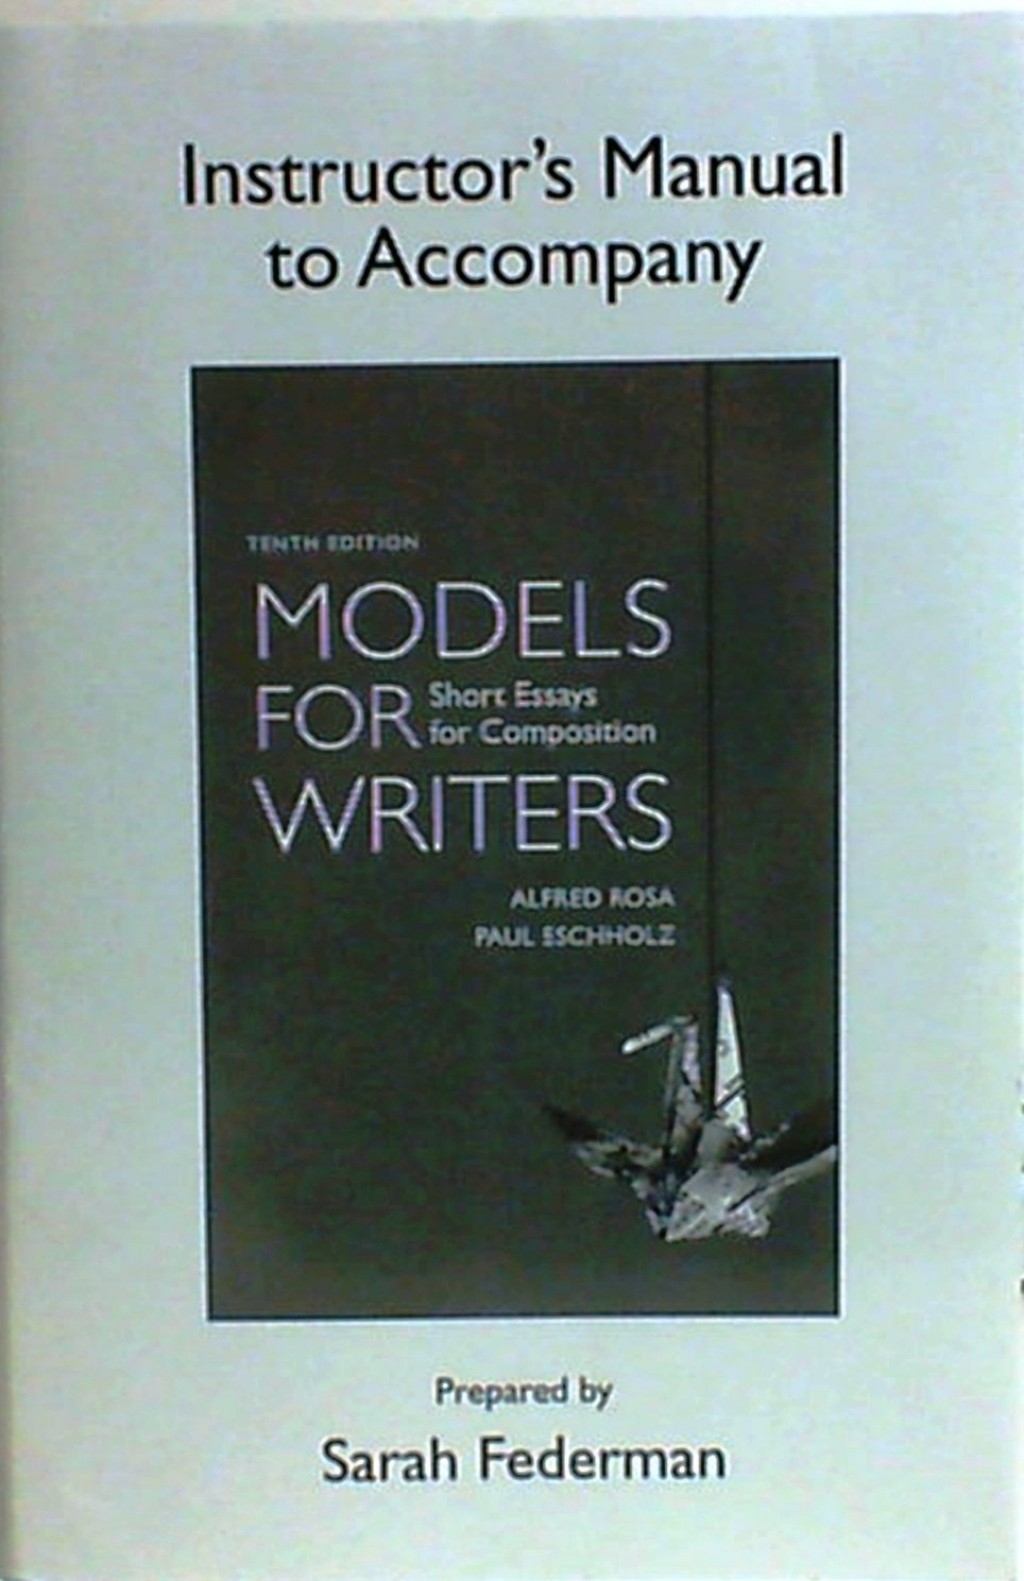 007 Models For Writers Short Essays Composition Essay Example Singular 12th Edition Pdf 13th Large